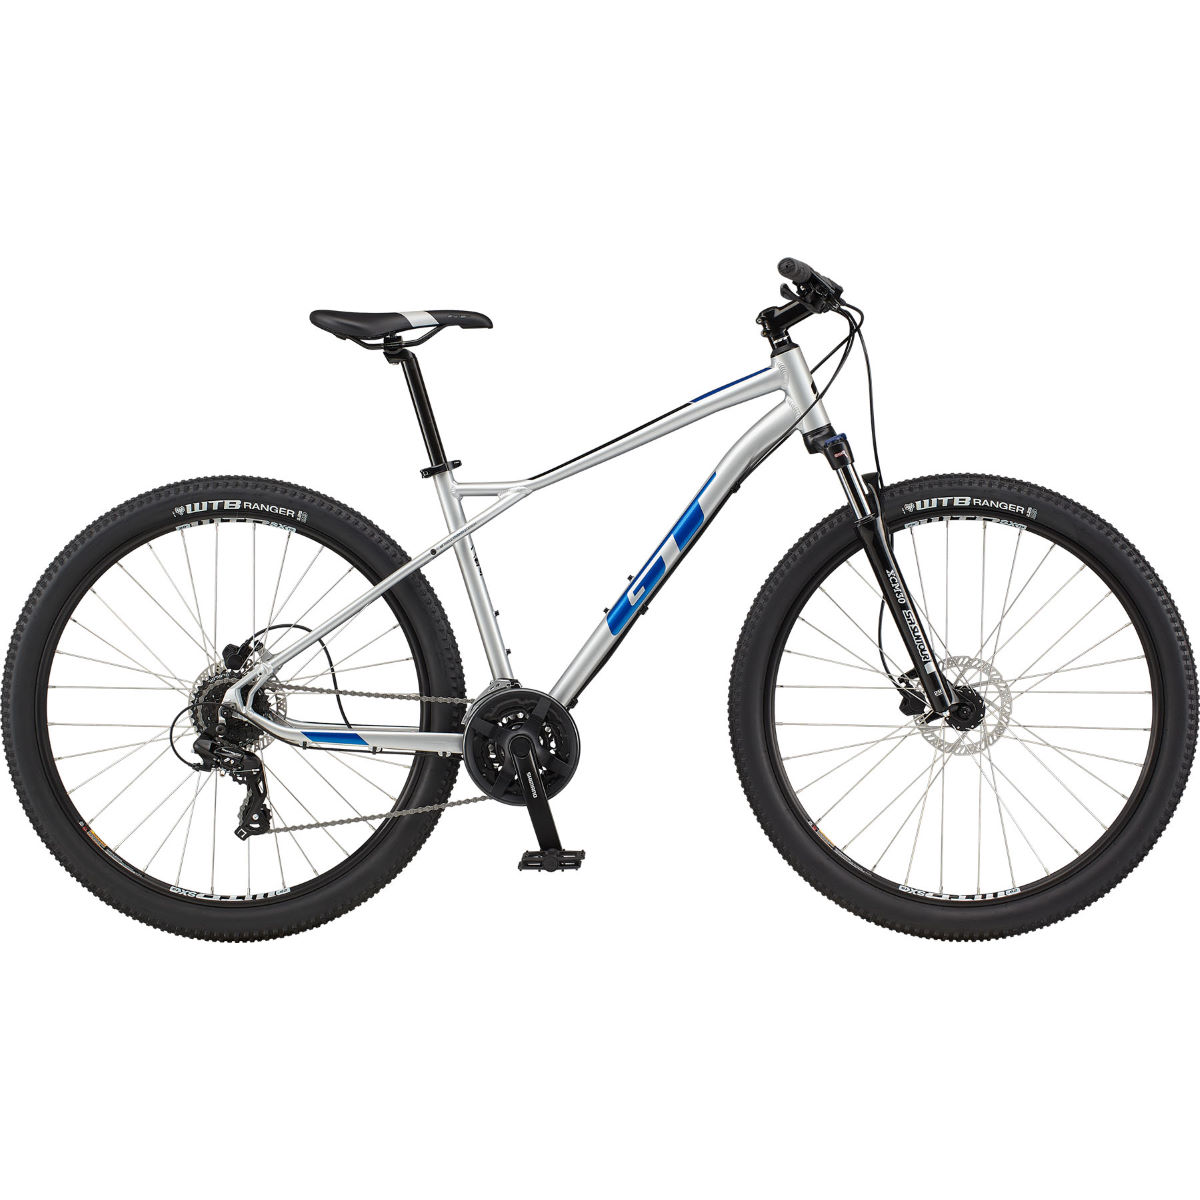 Gt Aggressor Expert 29 Hardtail Bike (2021) - X-large Silver